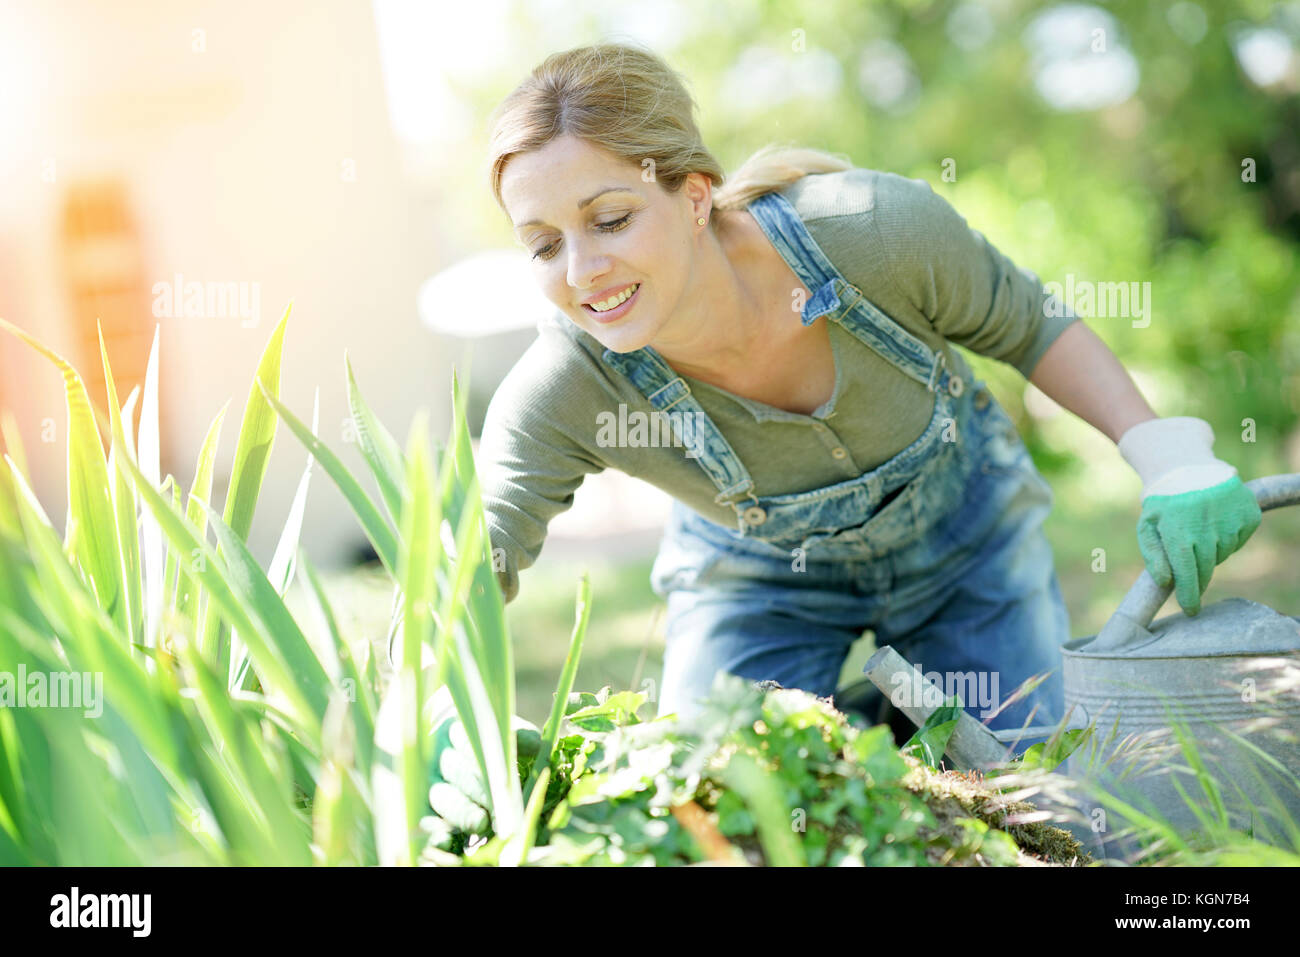 Smiling blond woman gardening - Stock Image